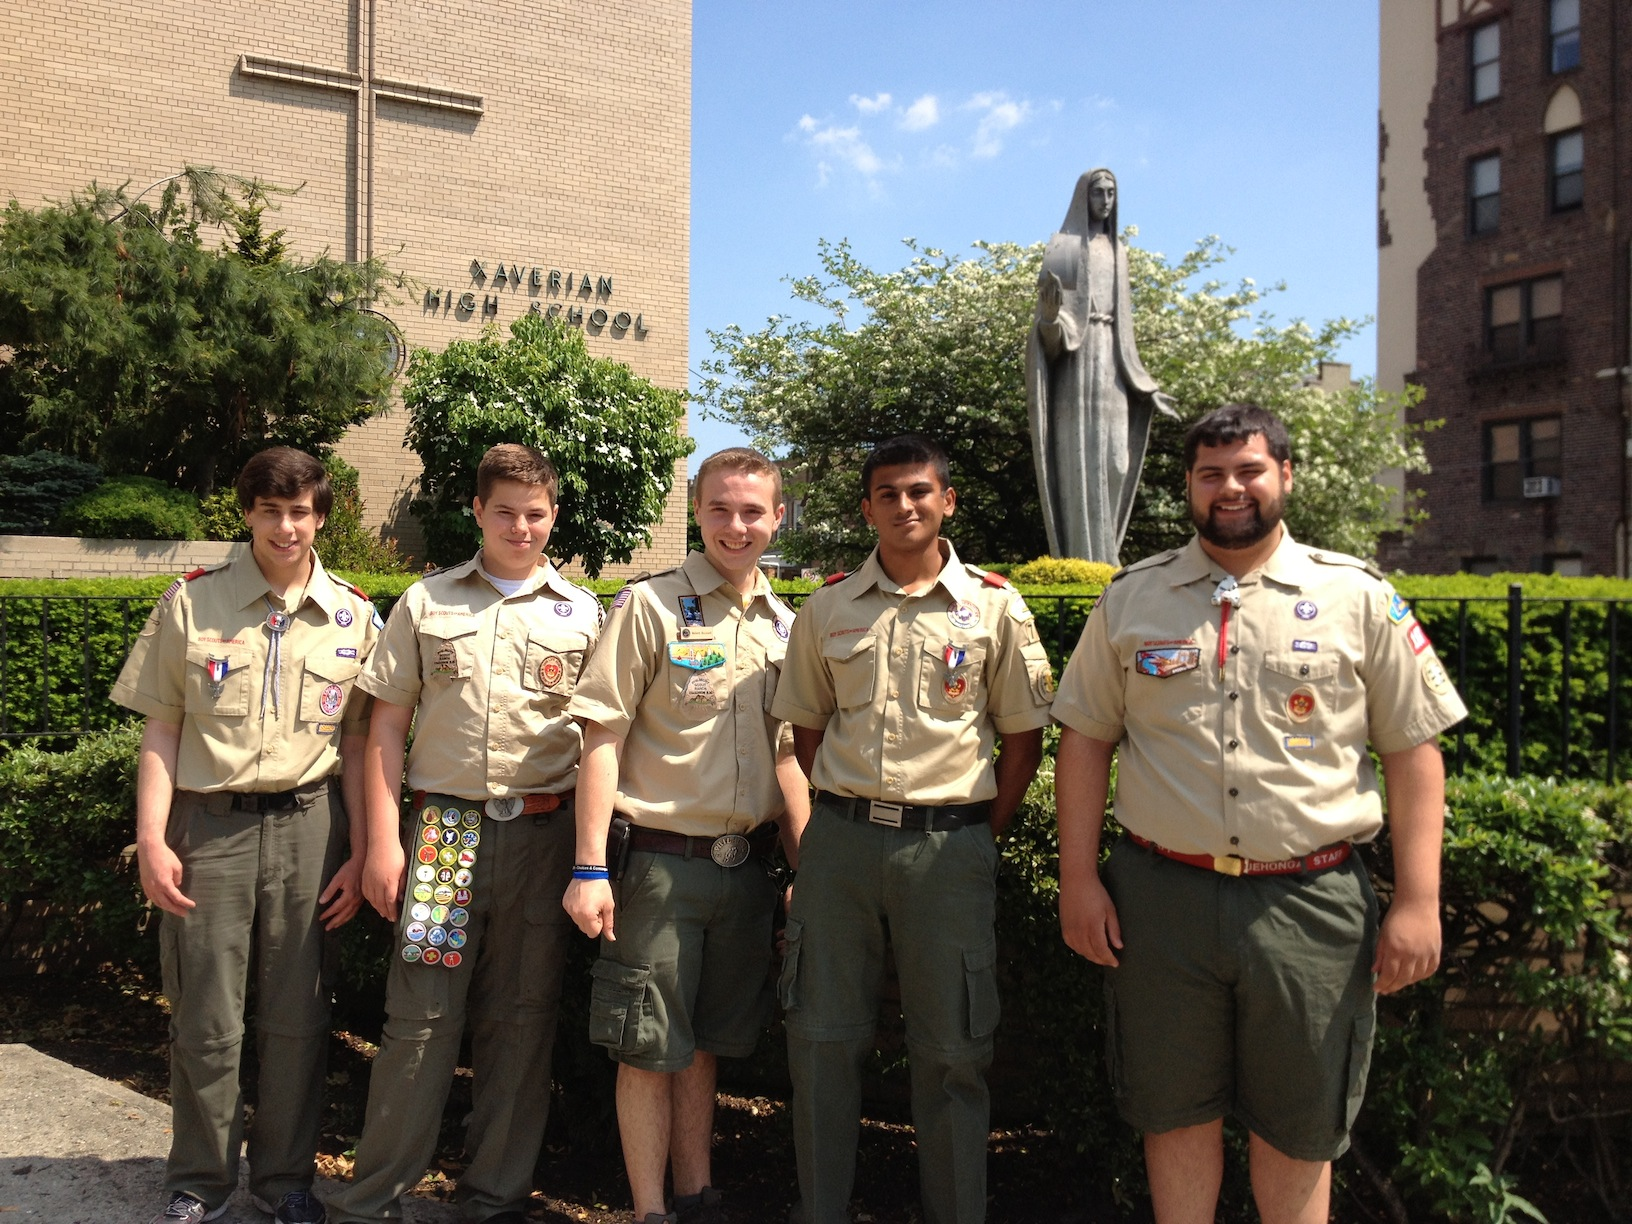 Eagle scouts, from left, Anthony Mecca, Peter Mosconi, Robert Buzzard, Raj Patel and Robert Rowley stand proud in their uniforms.